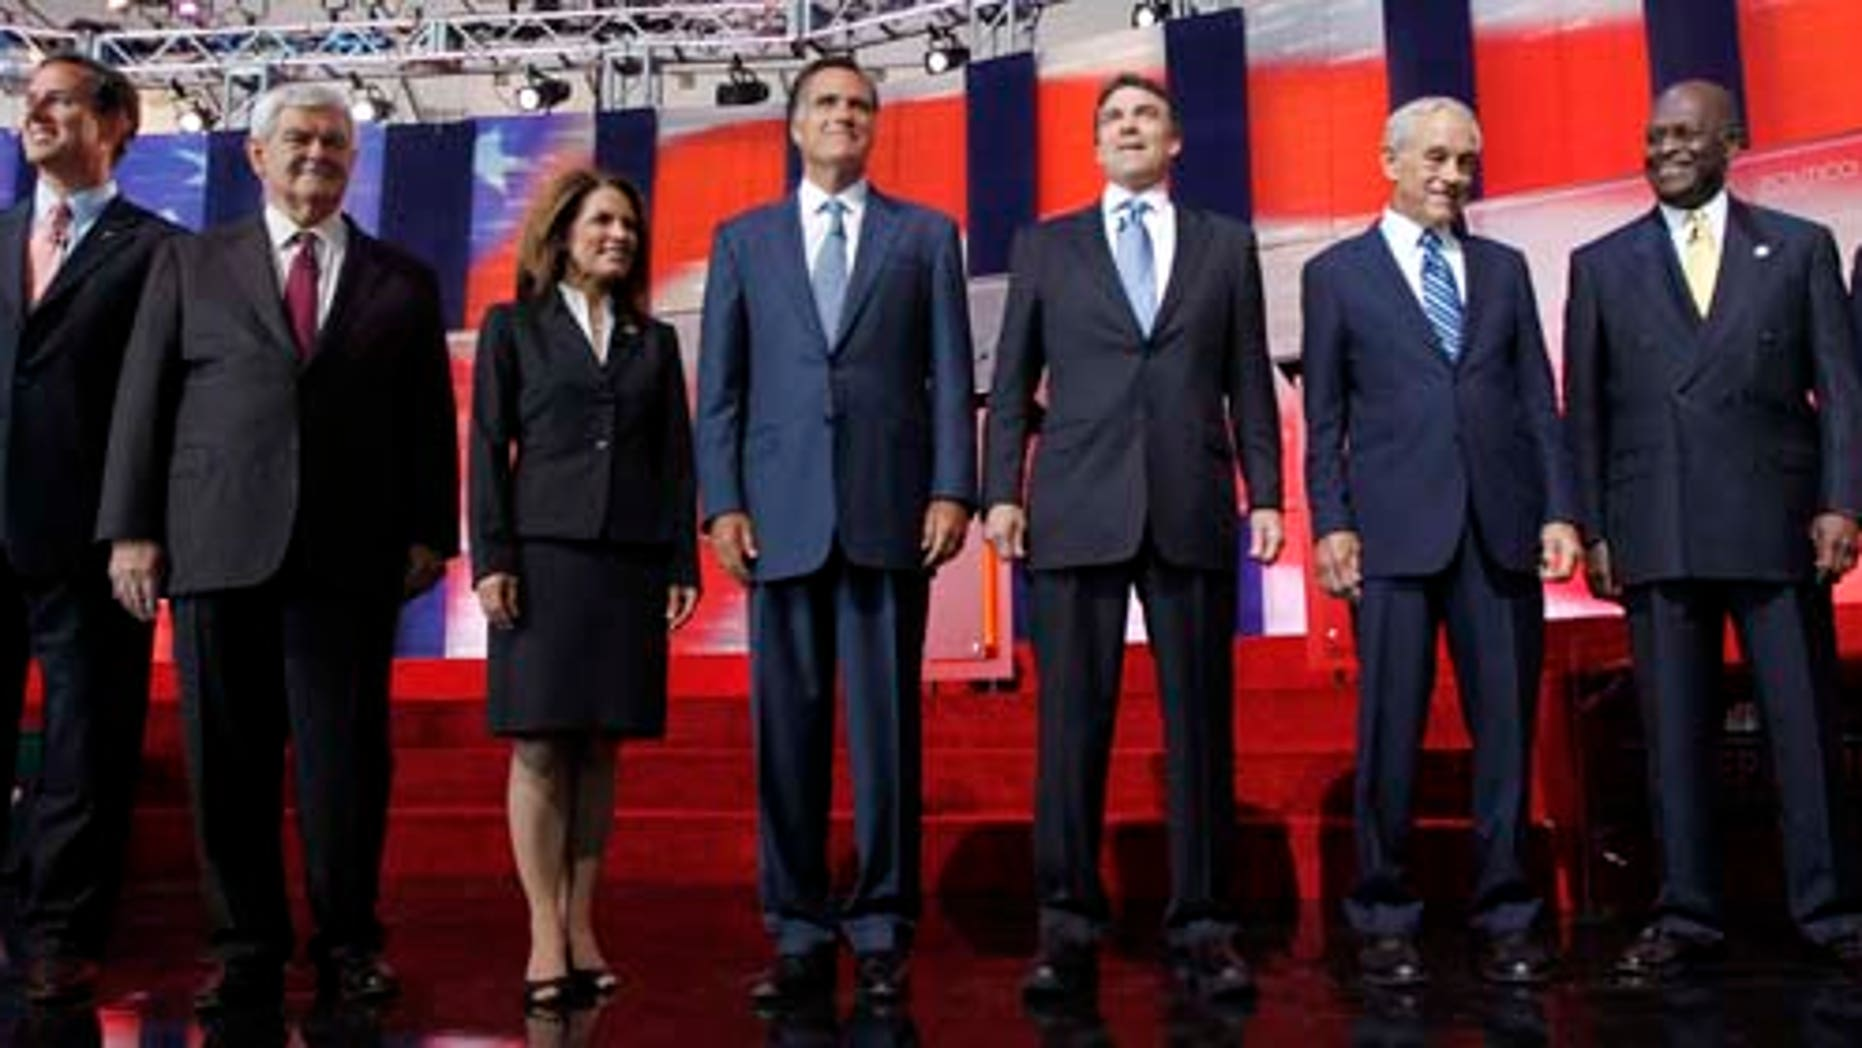 FILE - In this Sept. 7, 2011, file photo Republican presidential candidates stand together before a Republican presidential candidate debate at the Reagan Library in Simi Valley, Calif. They will debate again on Sept. 22, 2011, in Orlando. (AP Photo/Chris Carlson, File)